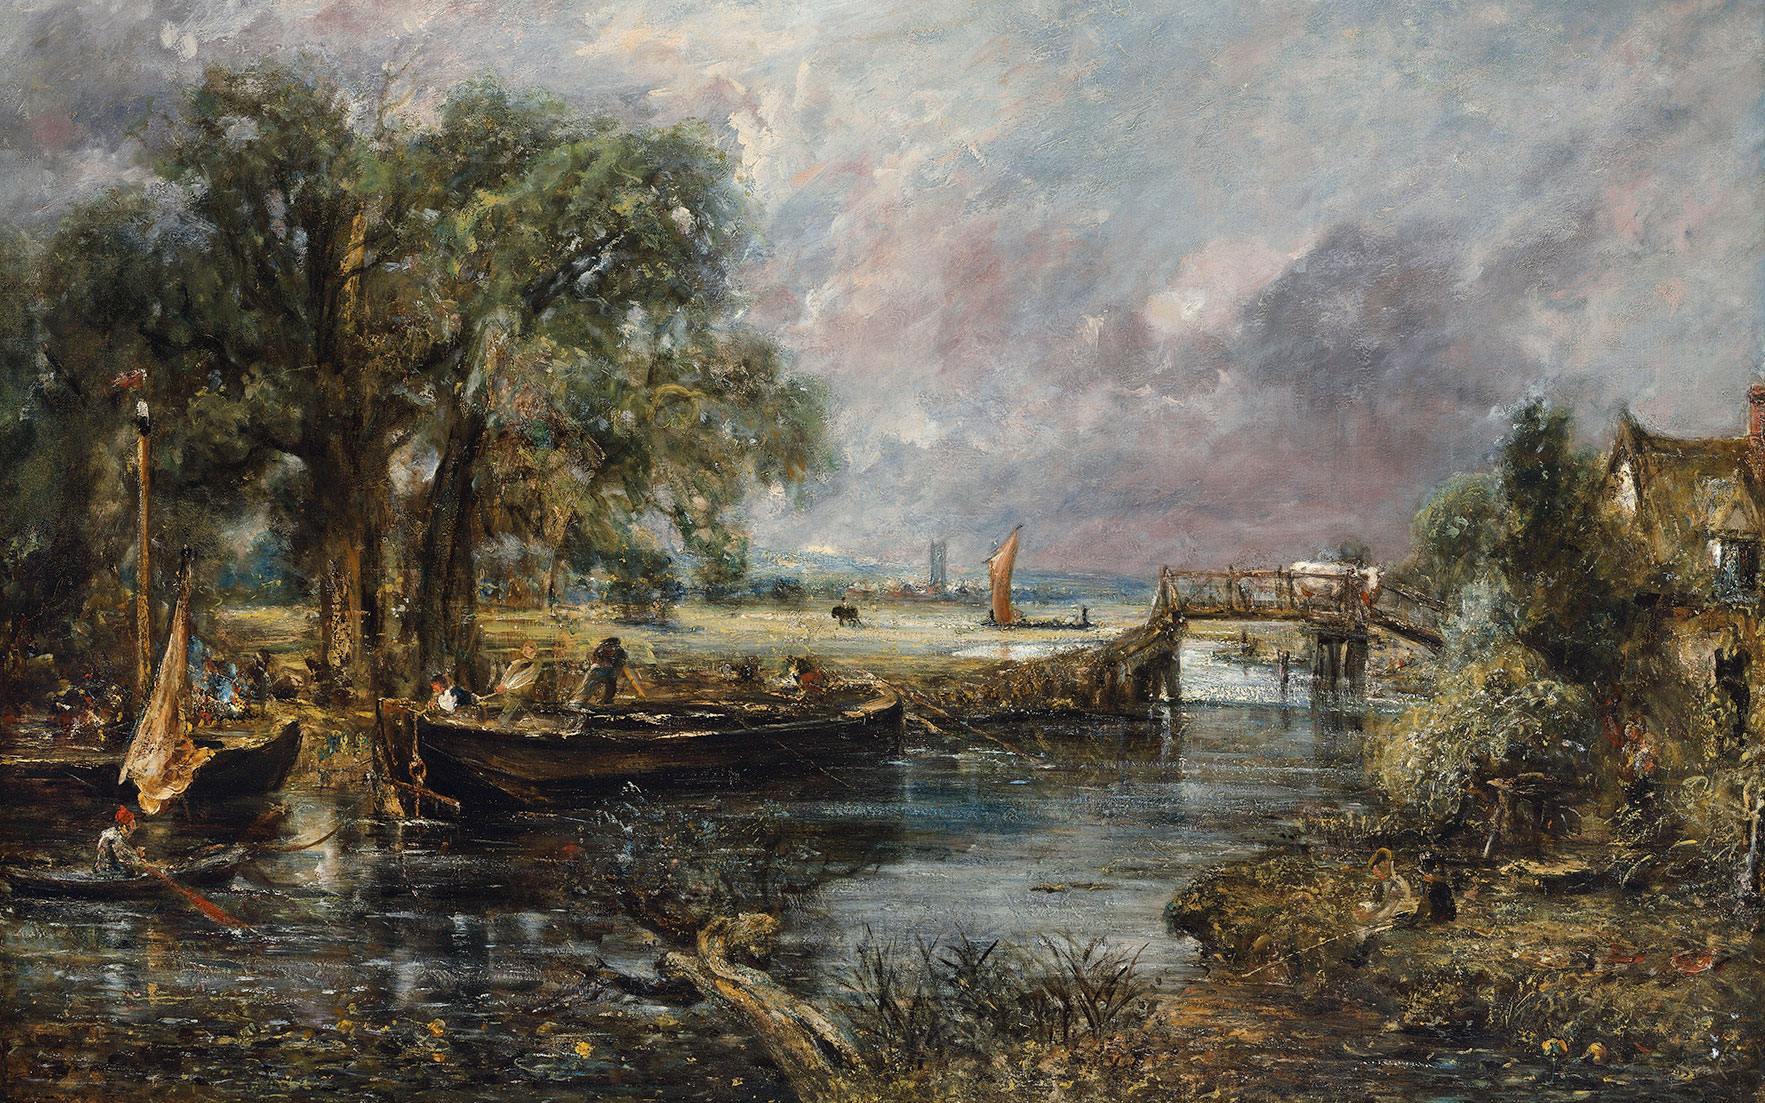 A work of genius by John Constable